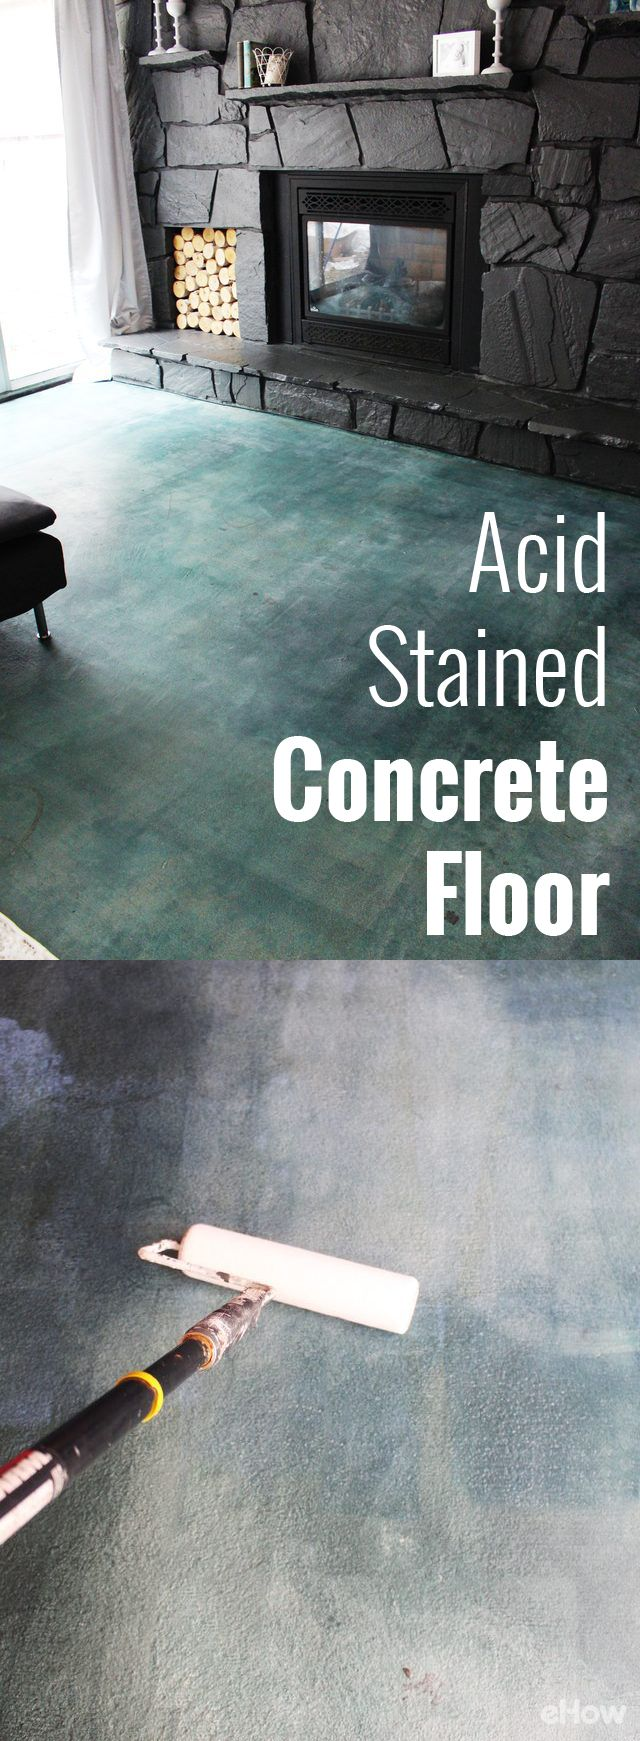 How To Acid Stain A Concrete Floor | Stained Concrete Patios, Acid Stain  Concrete And Acid Stain